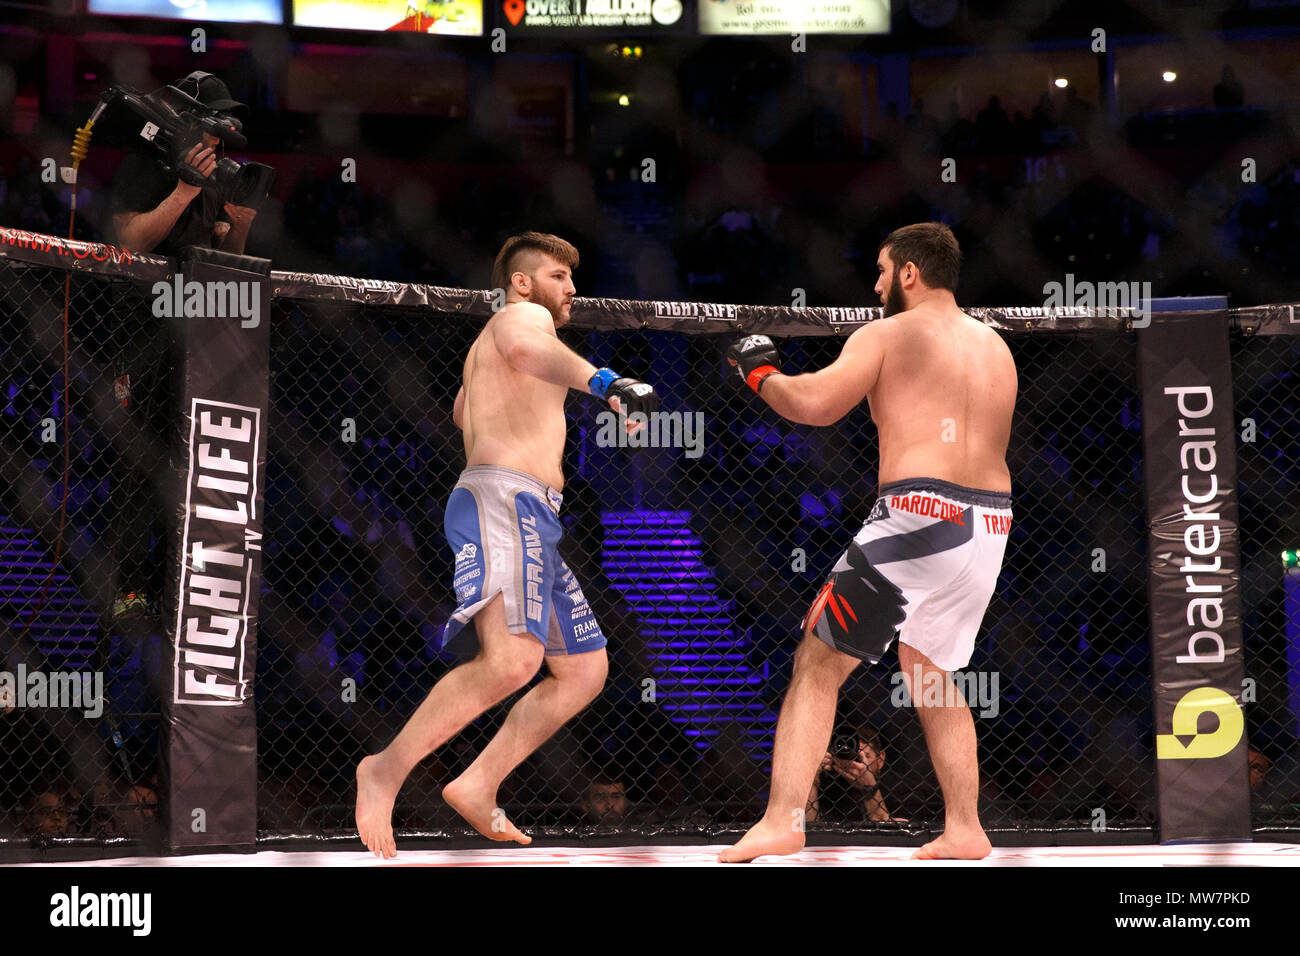 Tanner Boser (left) motions to launch a punch at Mukhomad Vakhaev (right) at ACB 54 in Manchester, UK. Vakhaev won via a split decision and went on to win the ACB Heavyweight Championship in his next fight. Absolute Championship Berkut, Mixed Martial Arts, MMA fight. - Stock Image